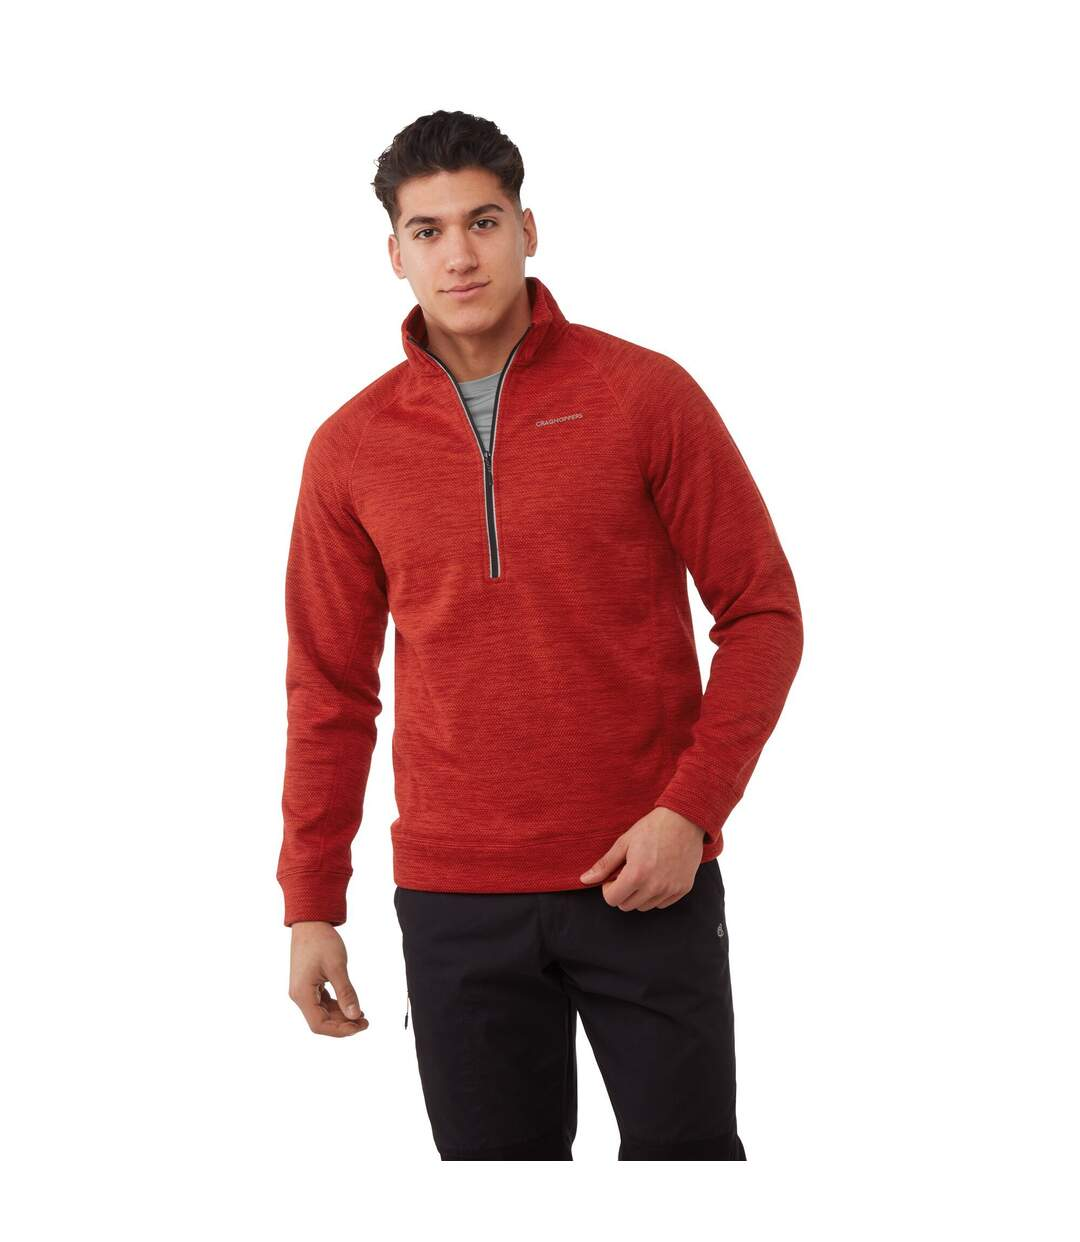 Craghoppers - Polaire STROMER - Homme (Rouge) - UTCG1325